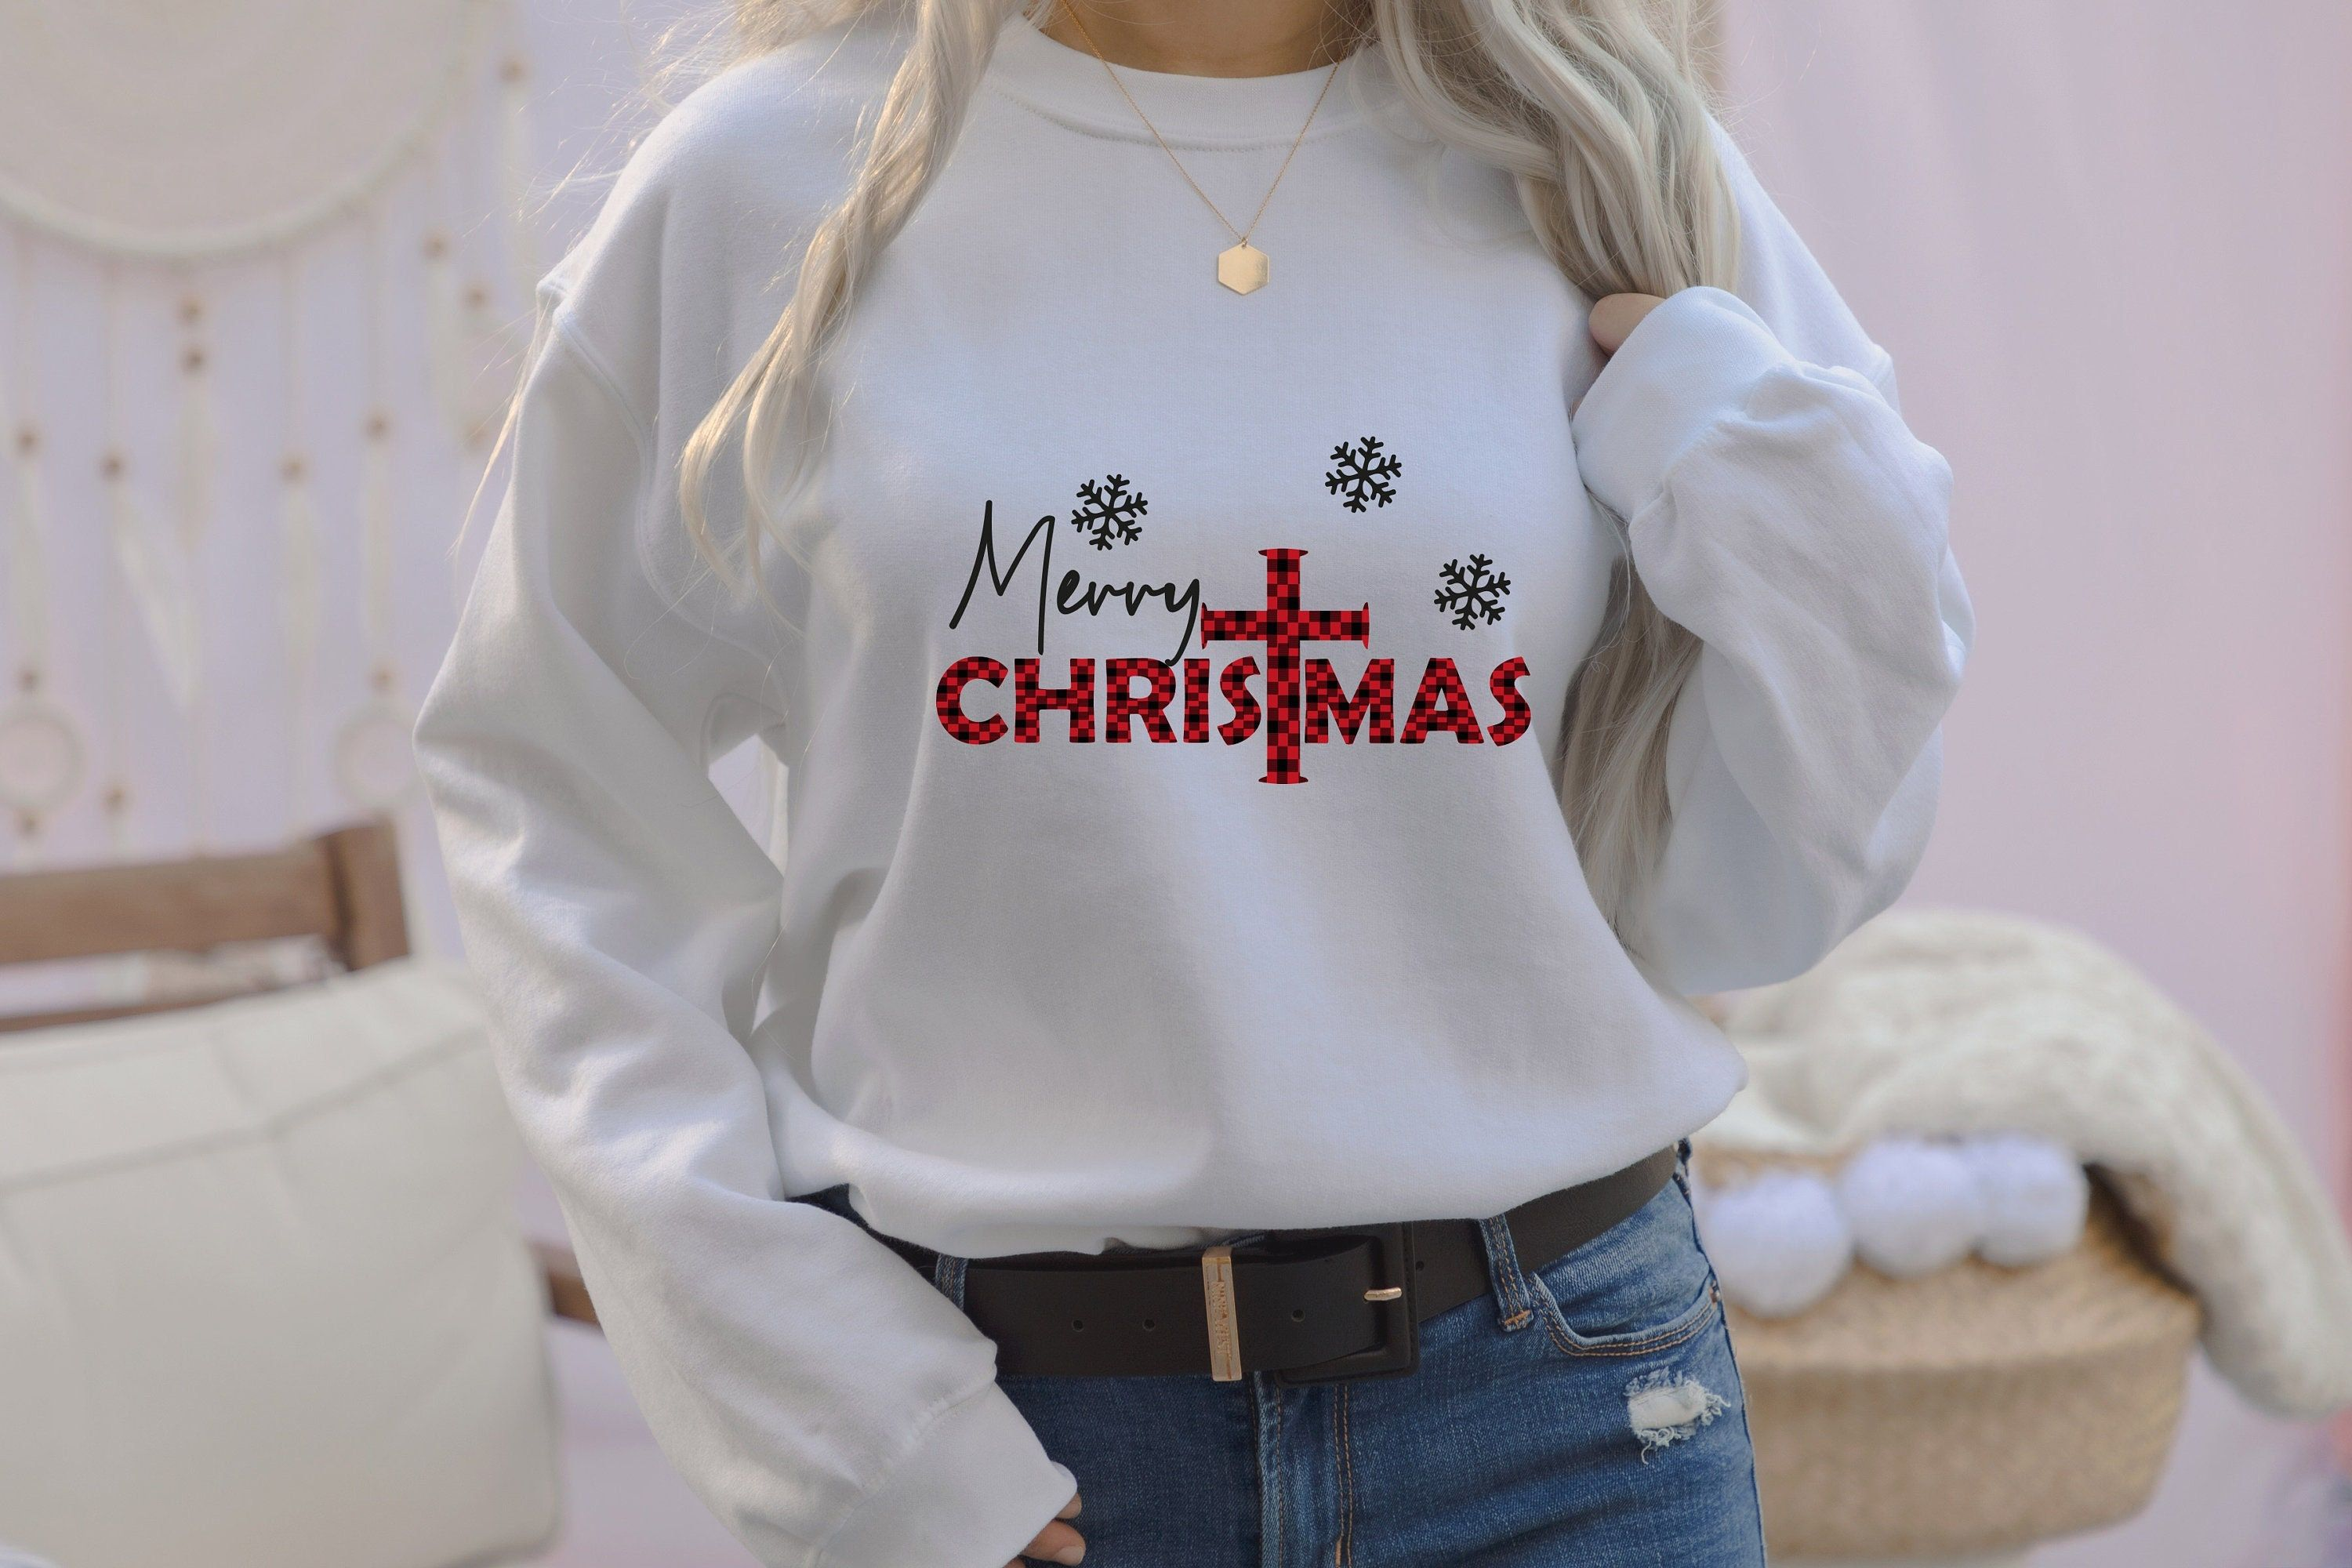 Merry Christmas Sweatshirt, Holiday Shirt Little Things favorite Doodles, Christmas Shirt For Women, ,Cute Xmas Shirt, Merry And Bright and more custom / personalized tshirts, at Level Up Tees Online Store! ✔ By gifting it, you can create an unforgettable memory. ✔ This tshirt will make you feel happy and comfortable. ✔ We prepare our products with love and care. We are here to provide you perfect designs, high levels of quality and affordable products. We are dedicated to giving you the best cu